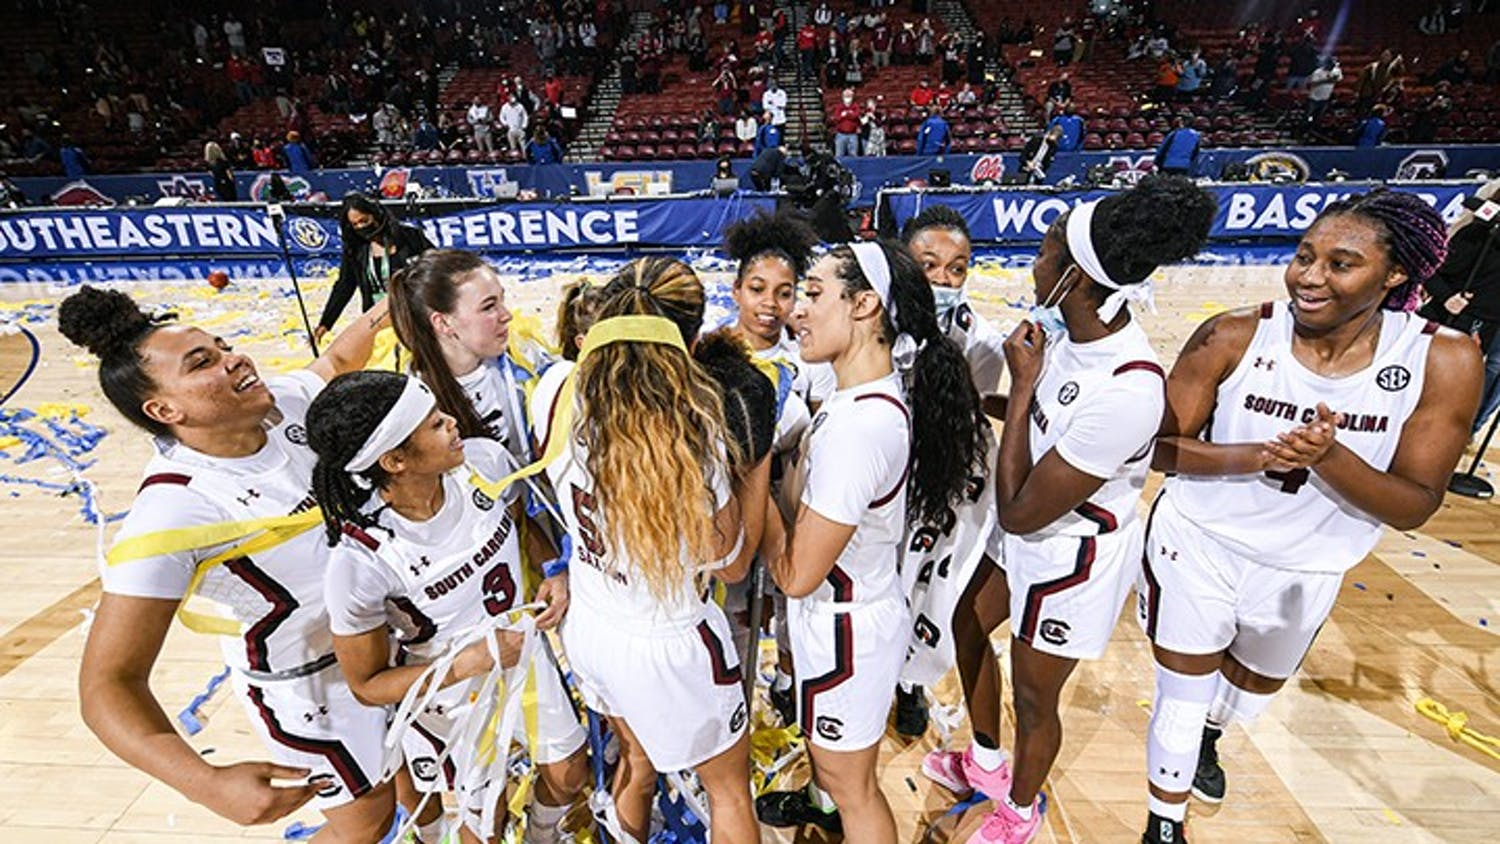 Members of the South Carolina women's basketball team celebrate after defeating Georgia 67-62 in the SEC Championship. The Gamecocks have been named No. 1 seed in the 2021 NCAA Tournament.